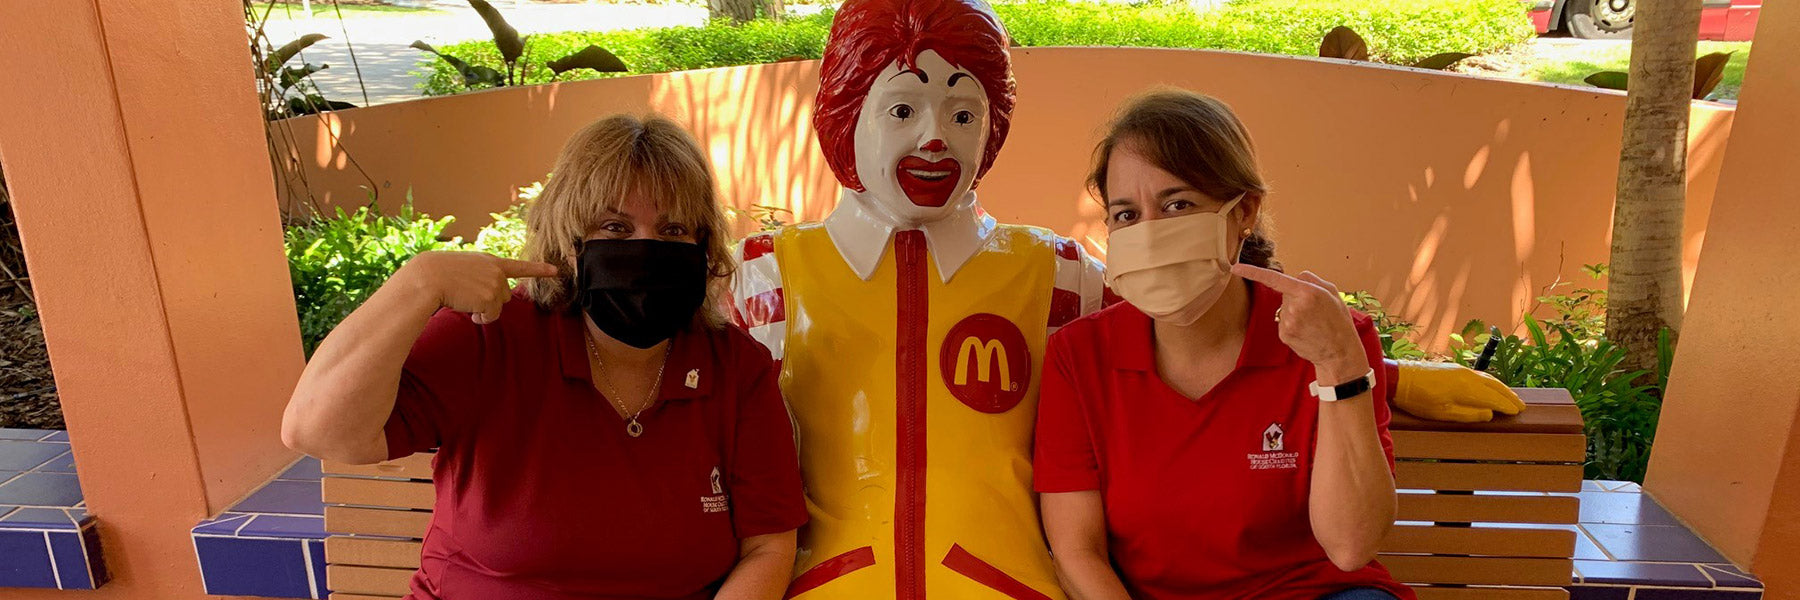 Marena Donates Face Masks to Ronald McDonald House Charities Across the Country